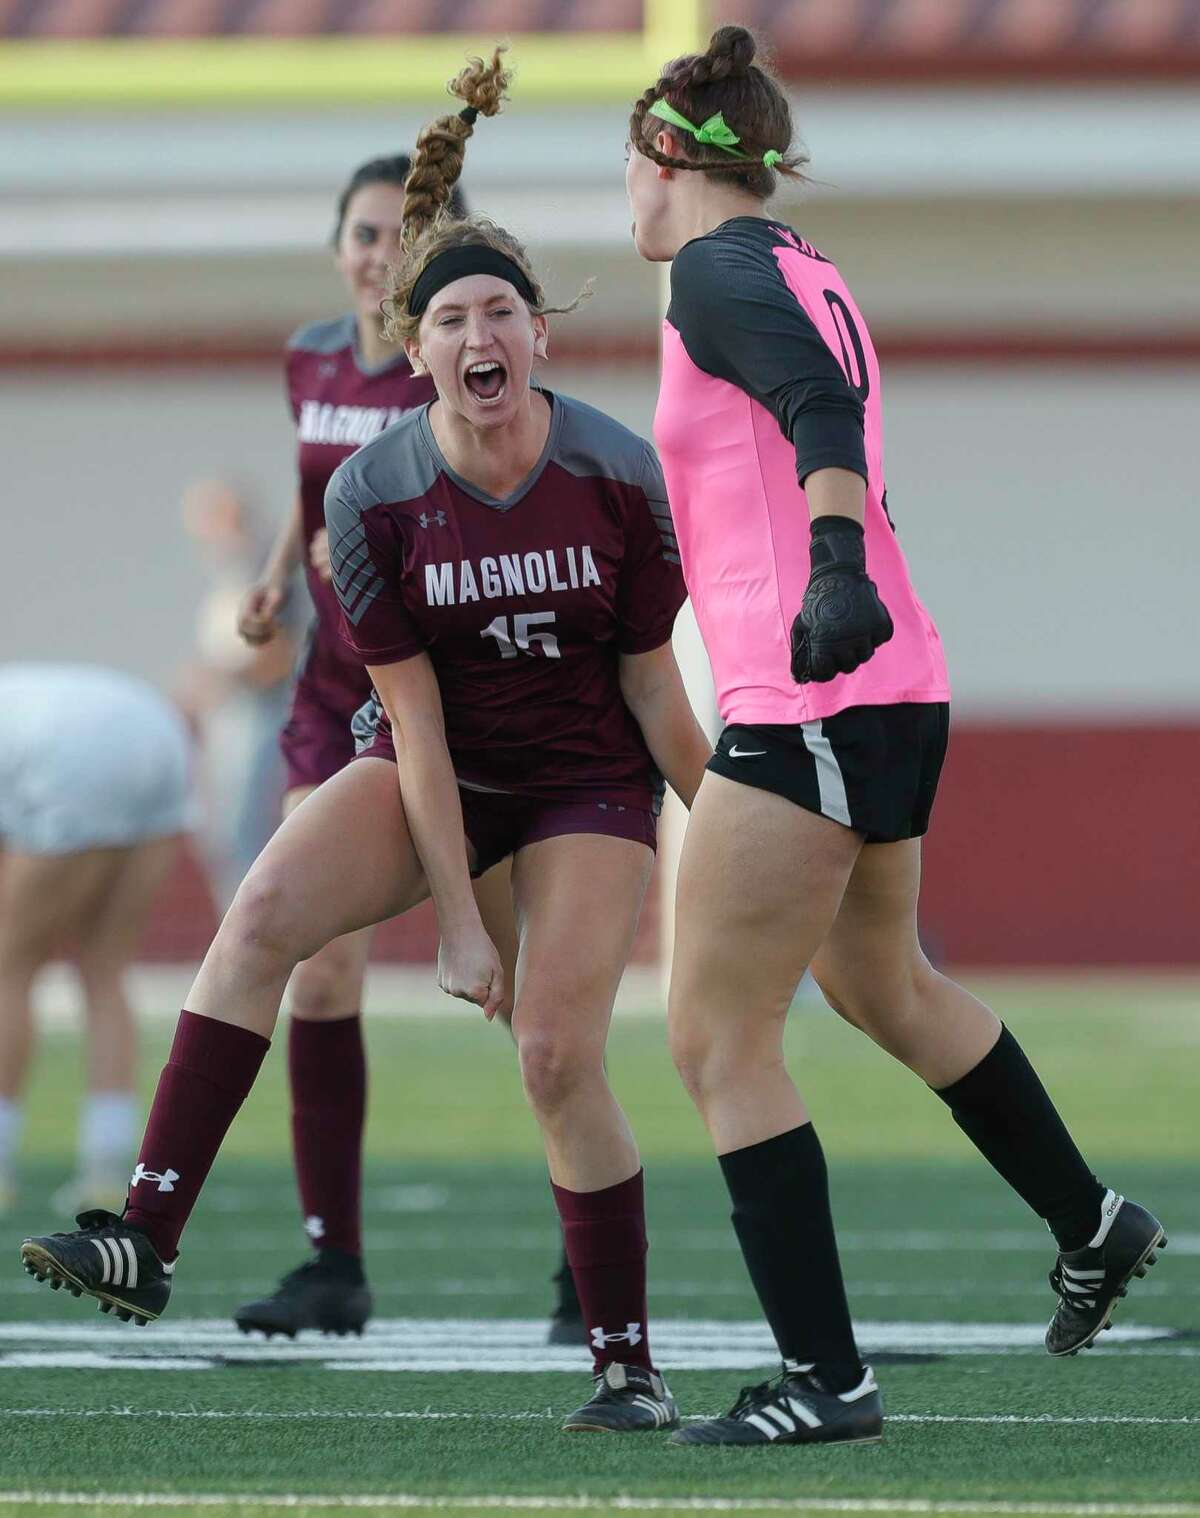 Magnolia's Skyler Replogle (15) jokes with goalie Taylor Sanderson (0) before the first period of a bi-district high school soccer match, Friday, March 26, 2021, in Waller.